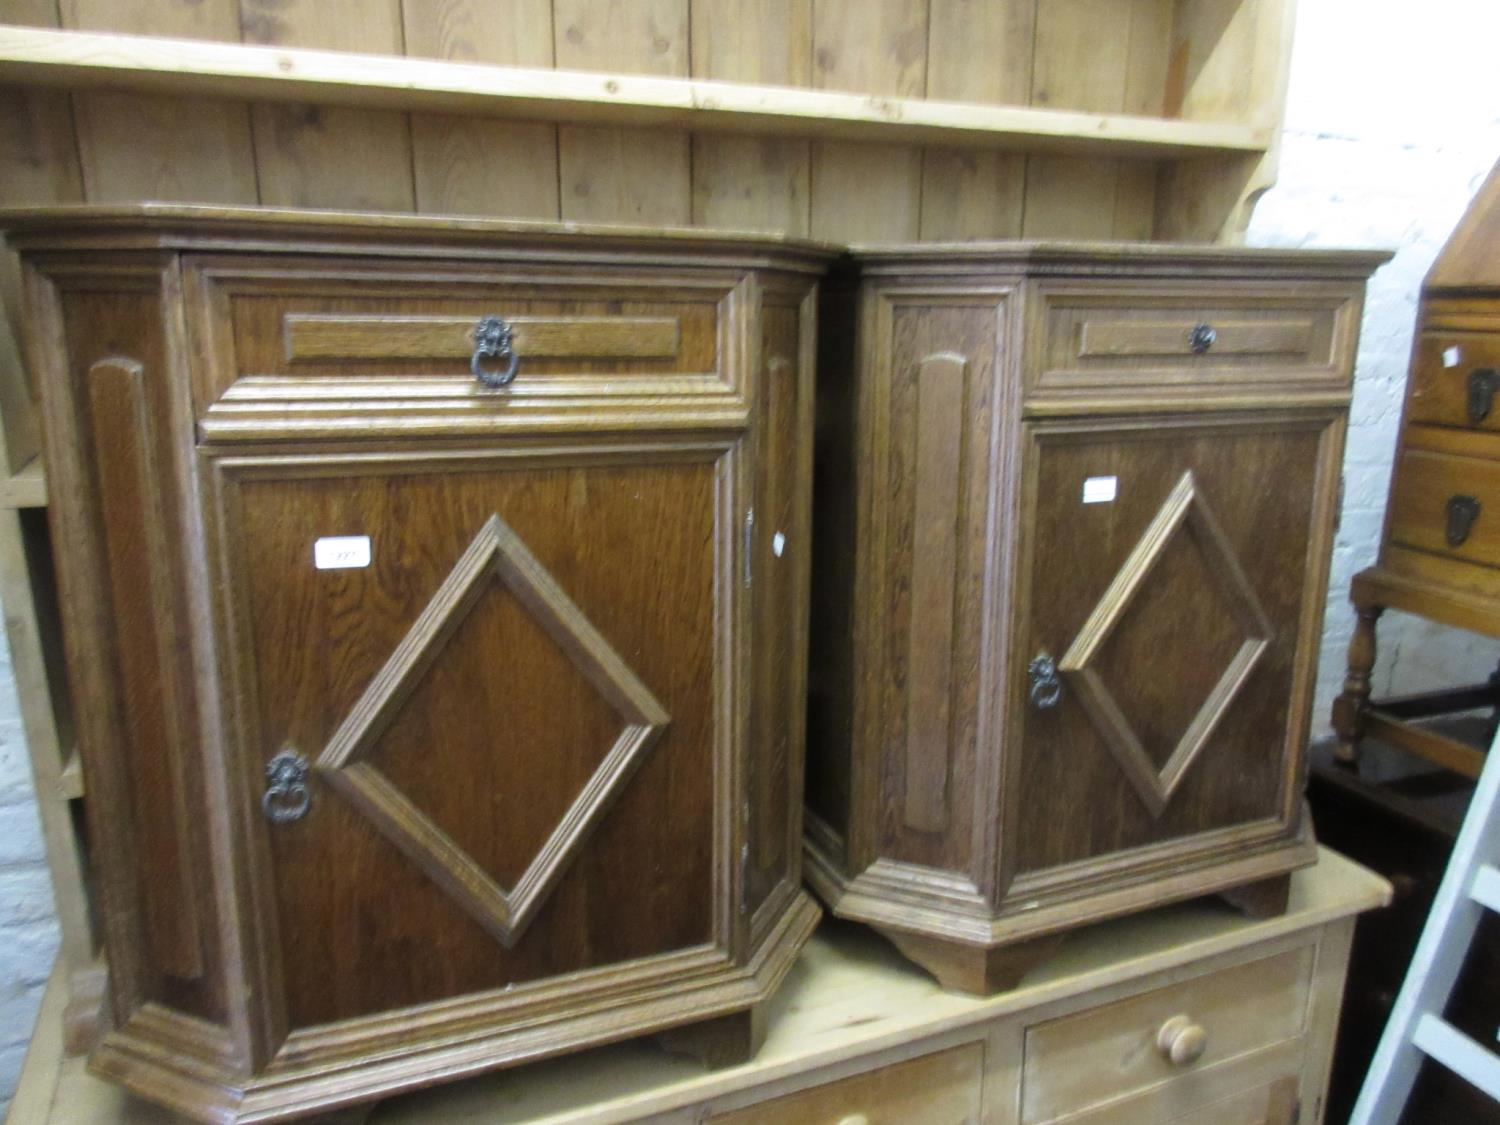 Pair of reproduction oak bedside cabinets with moulded panel doors and canted corners, together with